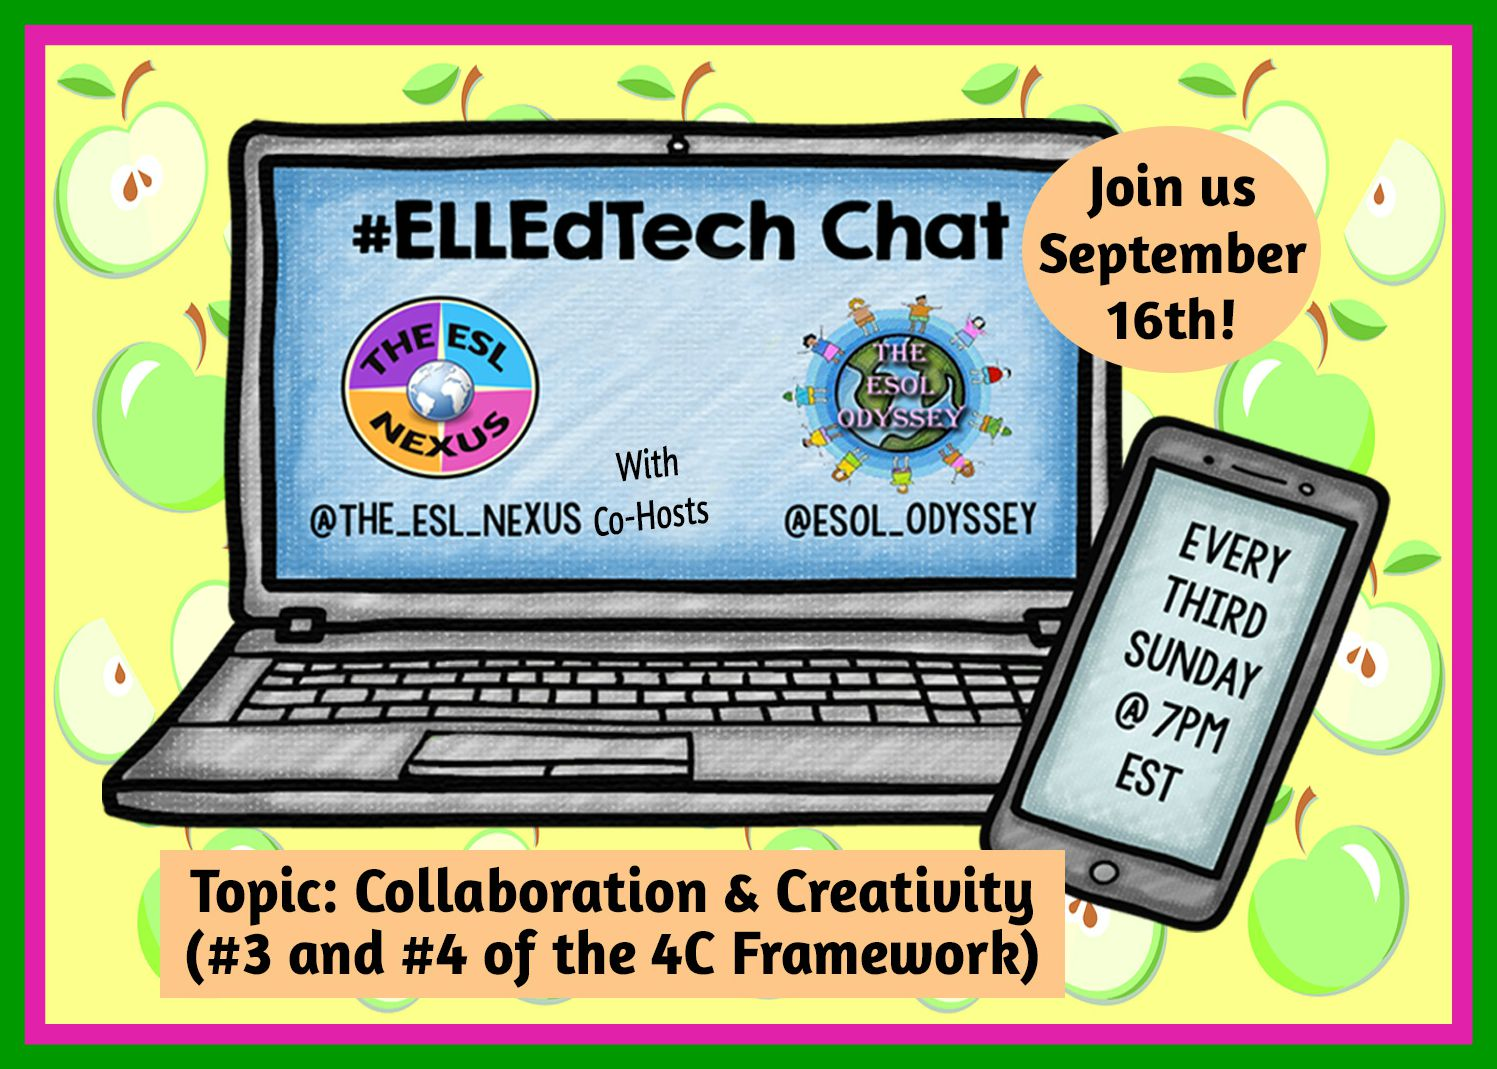 Come join the next #ELLEdTech Twitter chat on September 16th to discuss the 4C topics of Collaboration & Communication.| The ESL Nexus